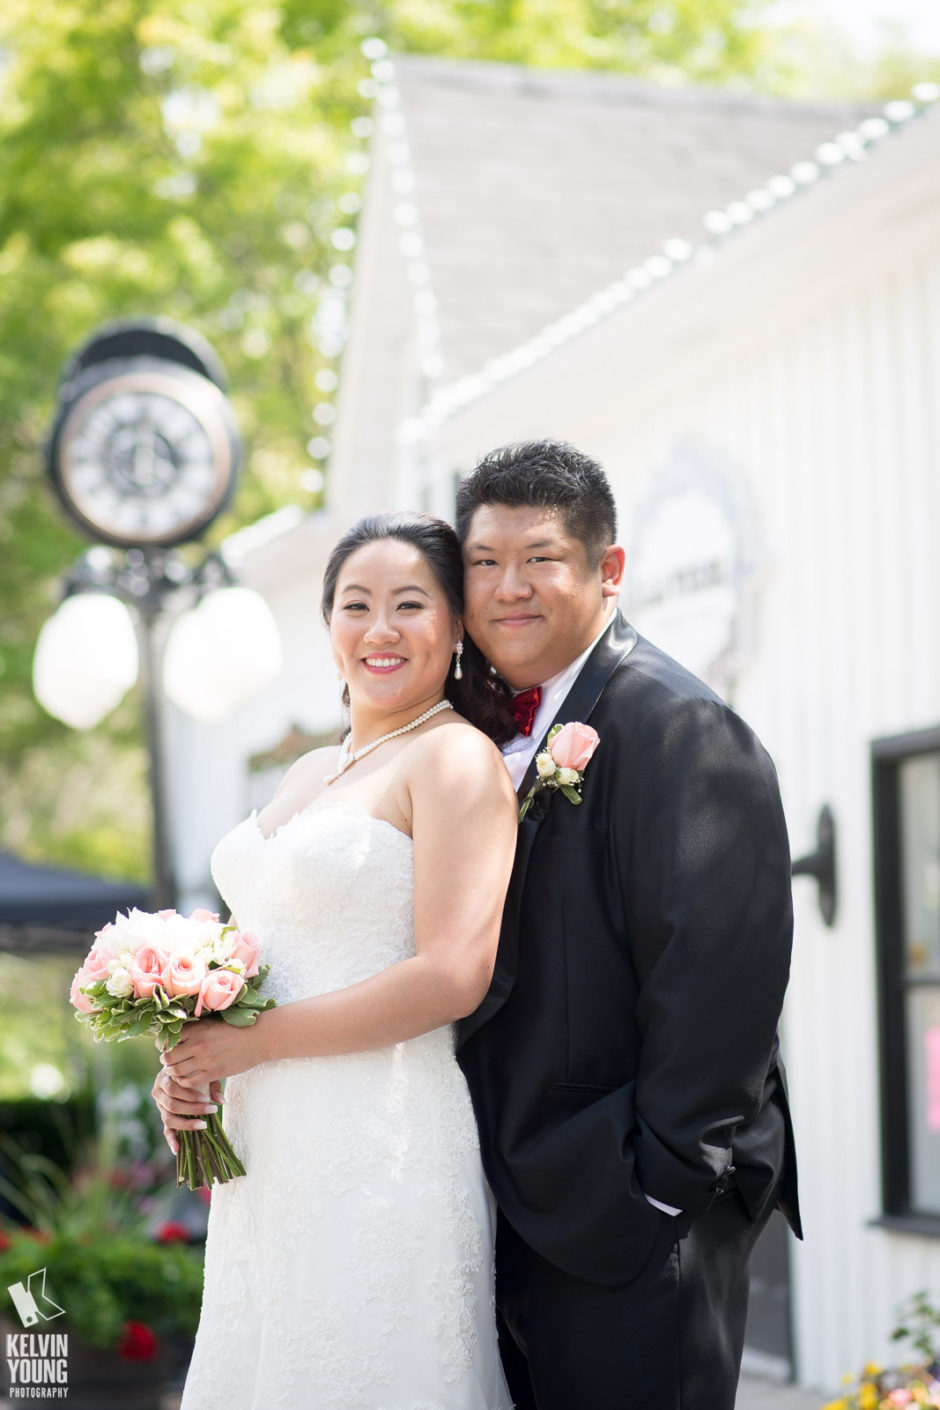 kelvin-young-photography_steph-ray-markham-wedding-photography_038